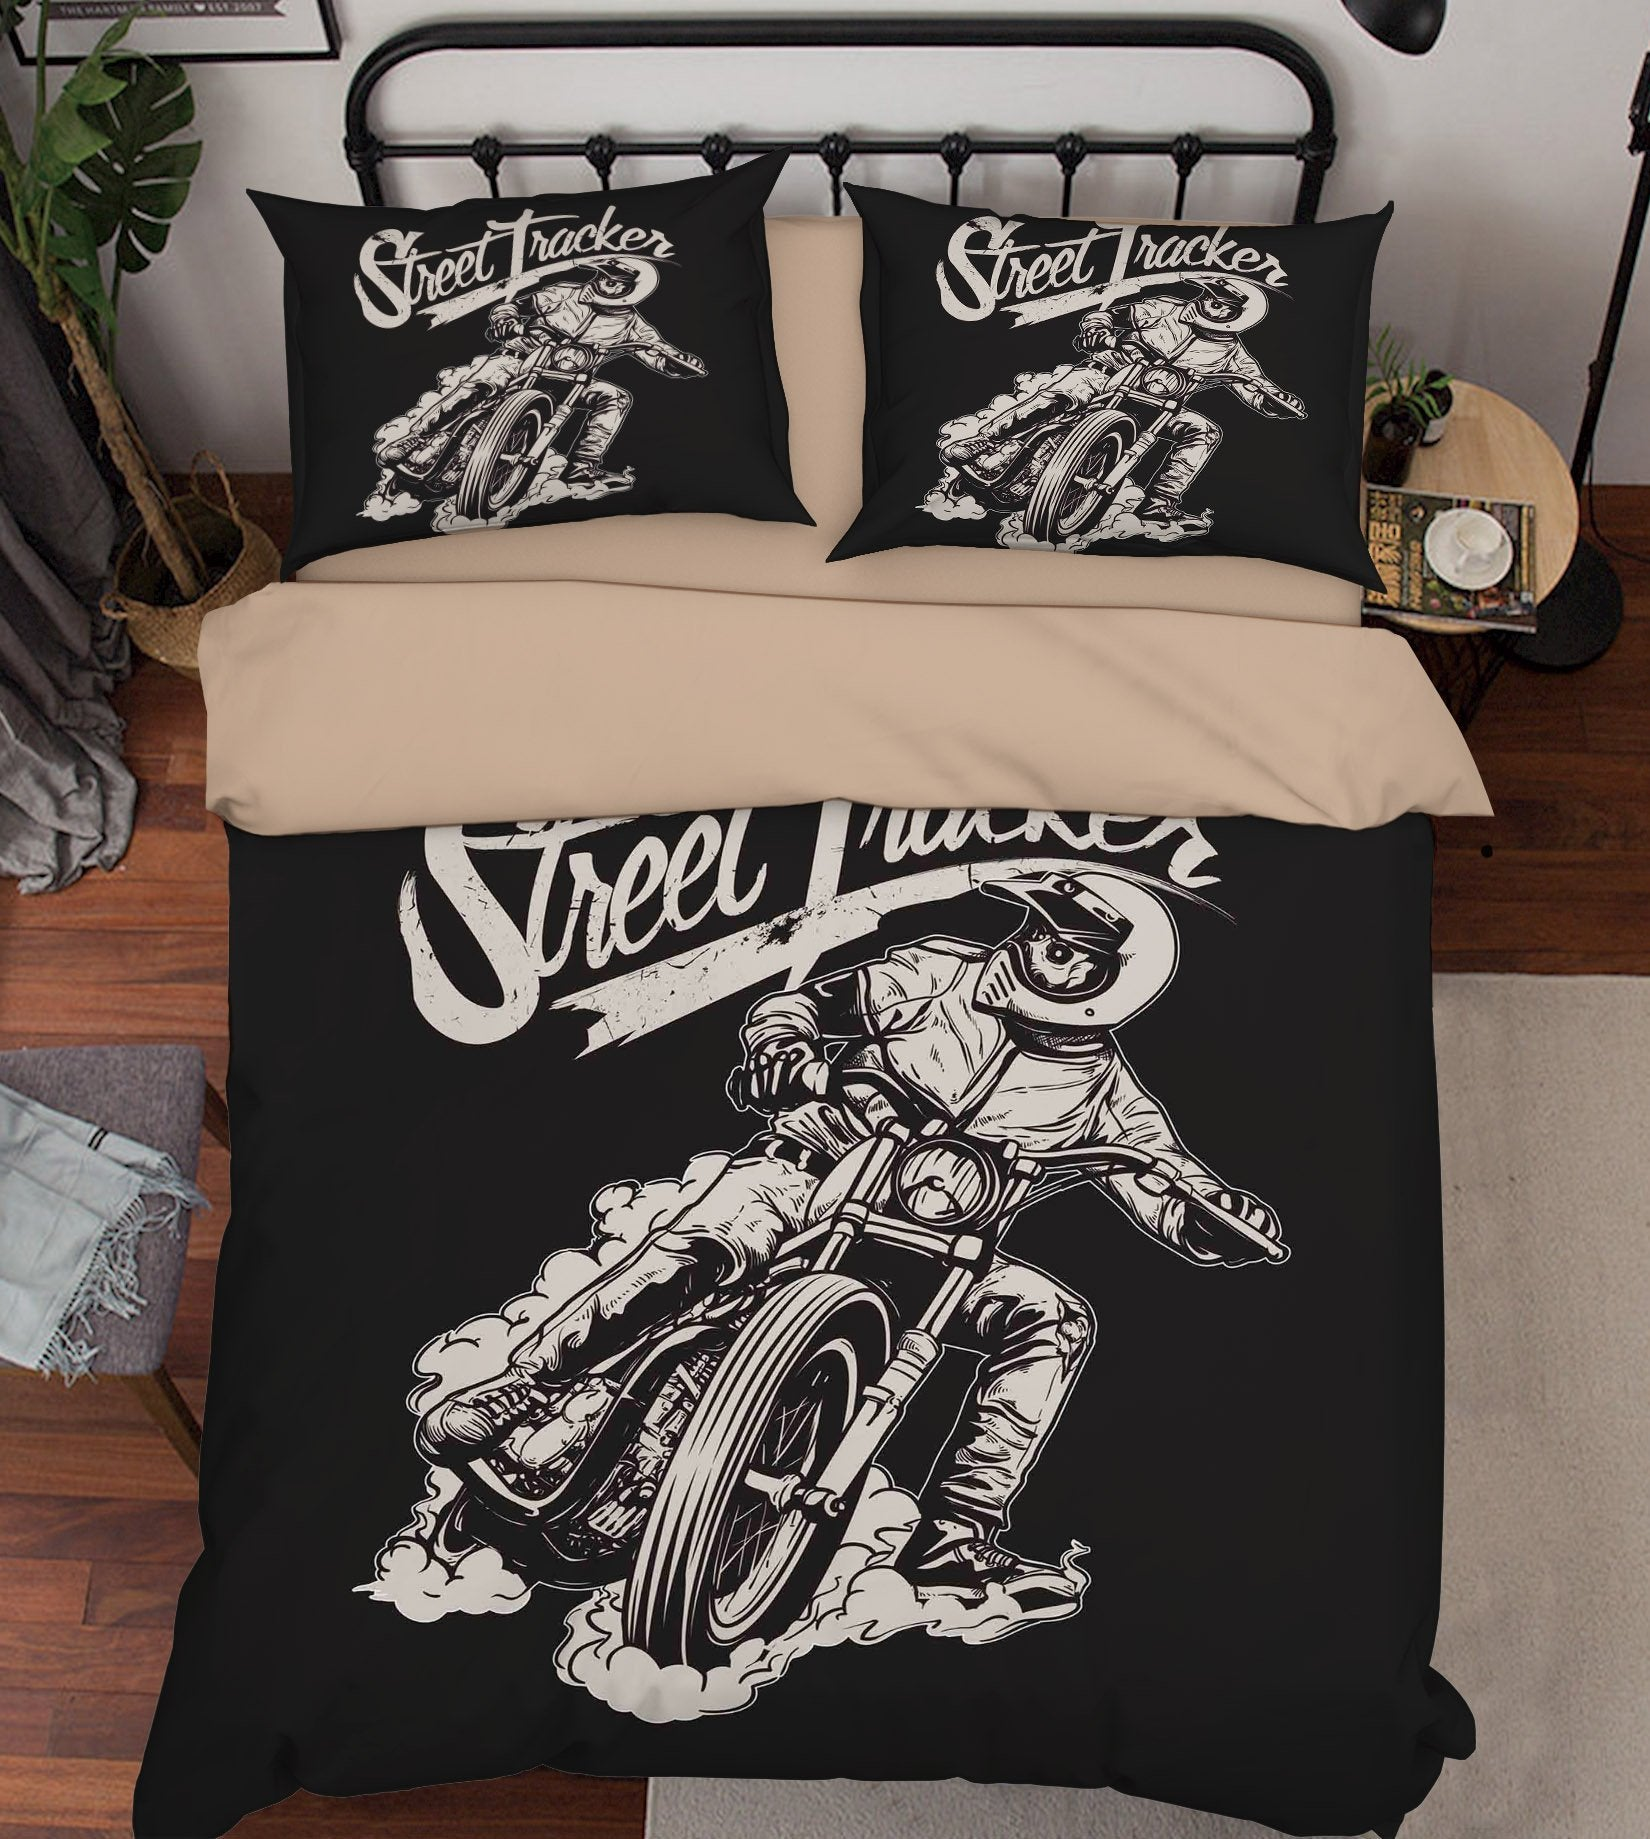 3D Riding A Motorcycle 117 Bed Pillowcases Quilt Wallpaper AJ Wallpaper